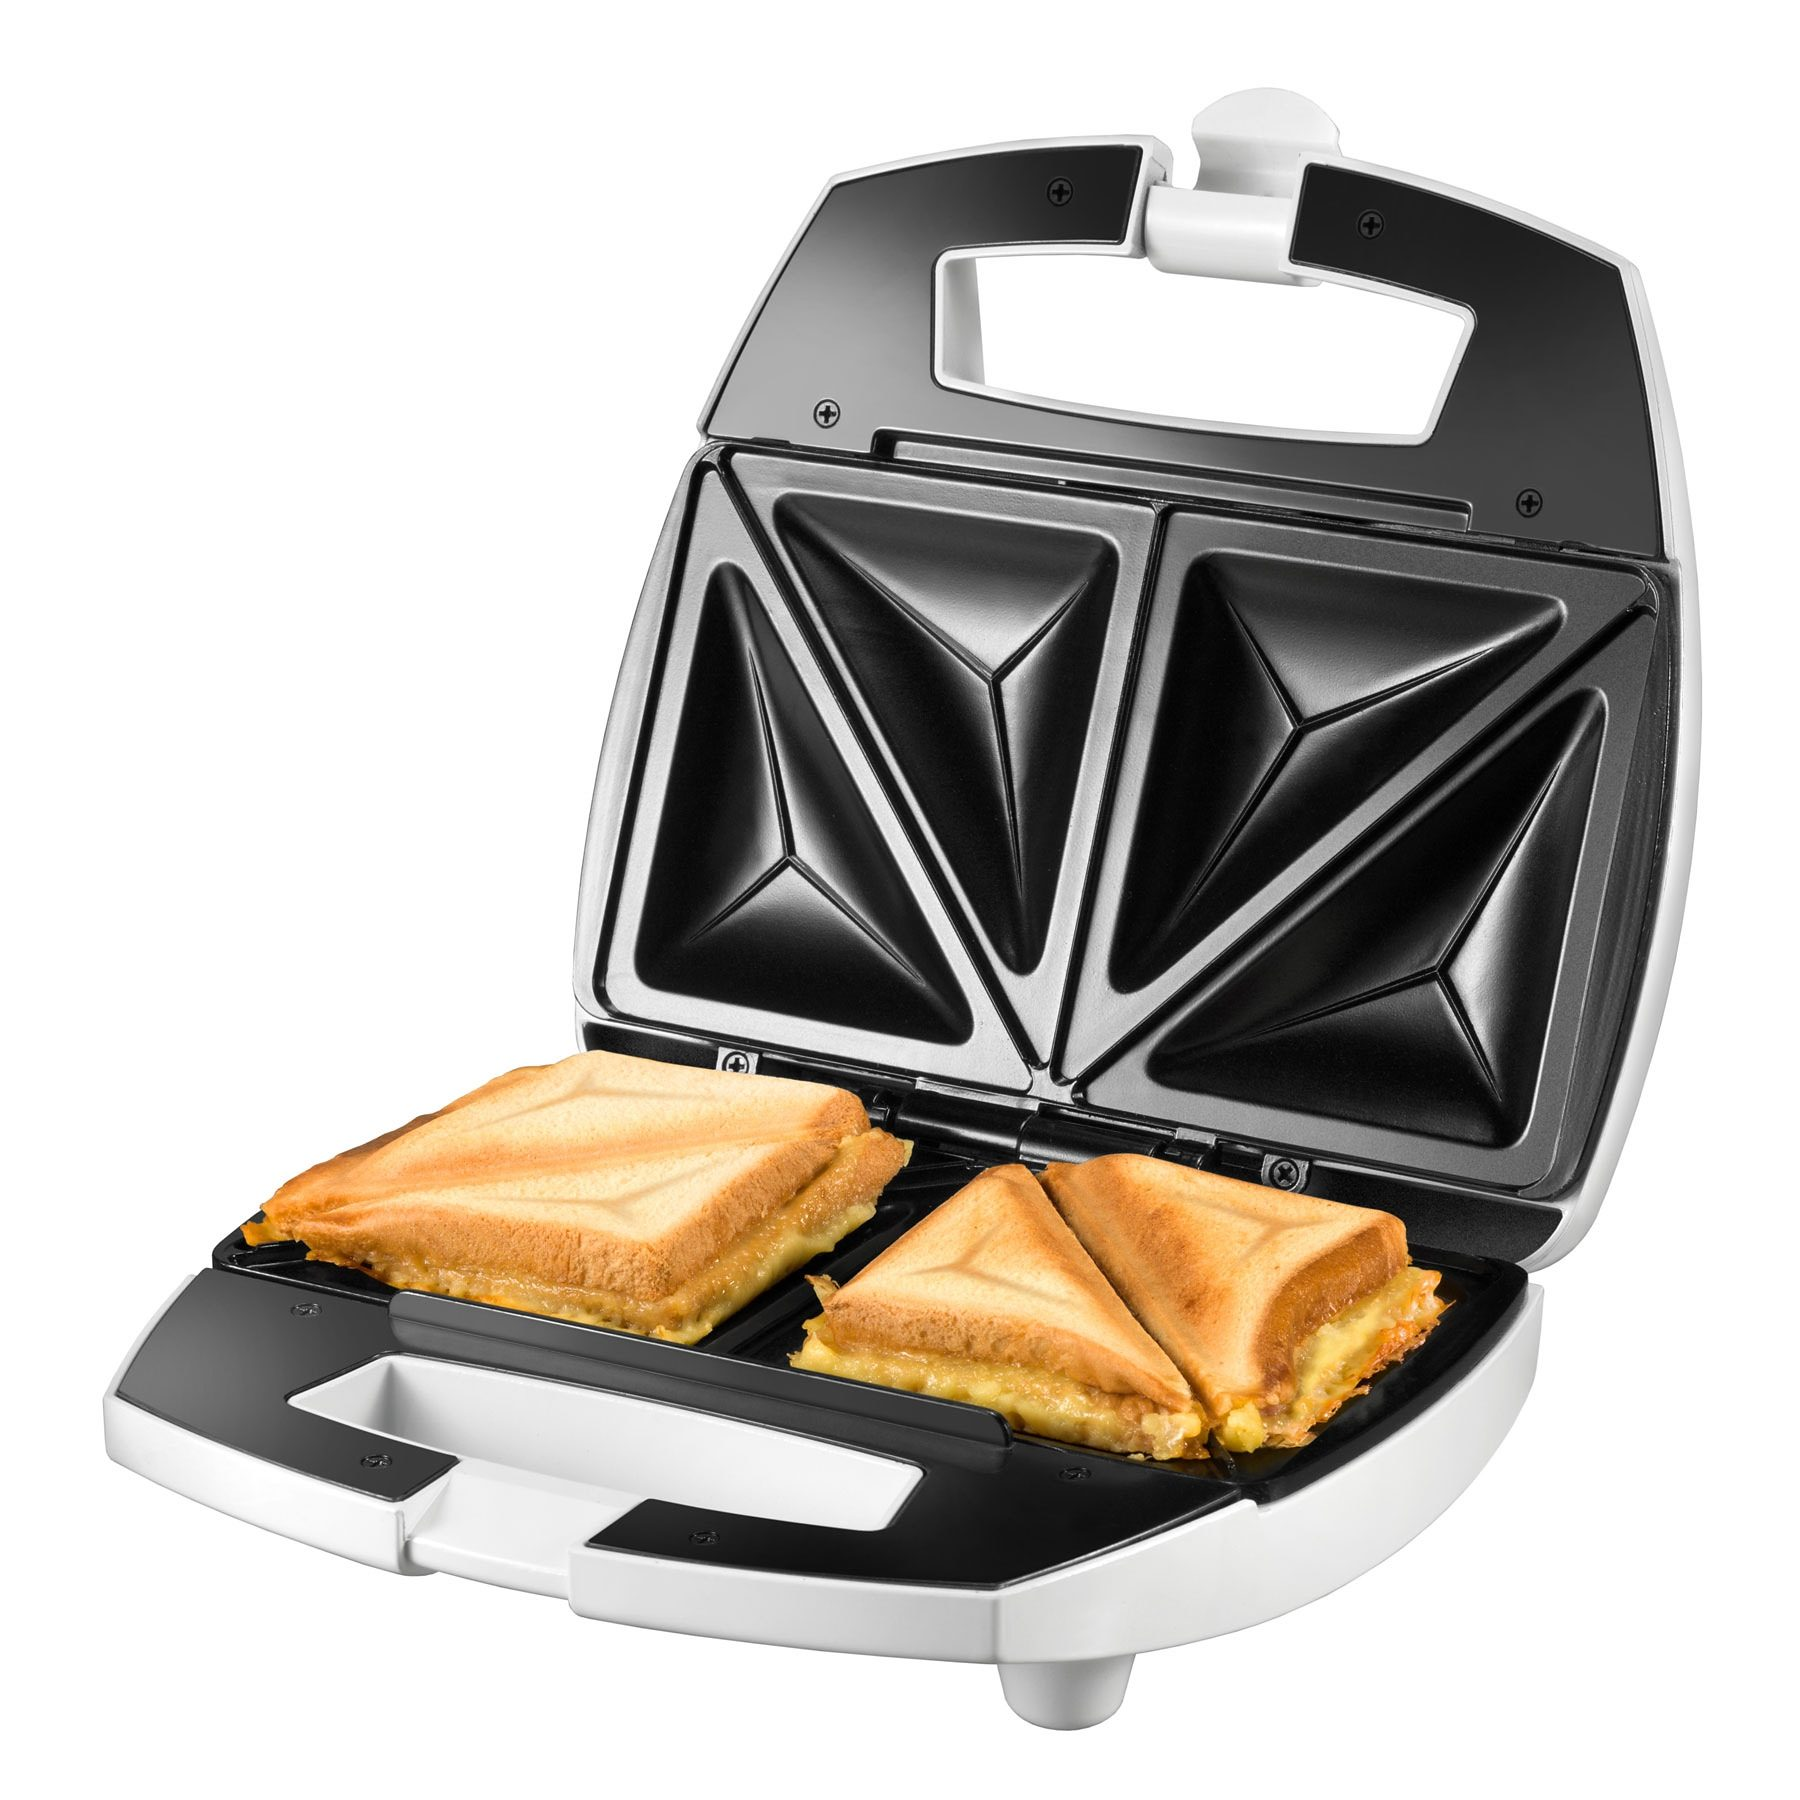 Unold Toaster 48421, 750 W